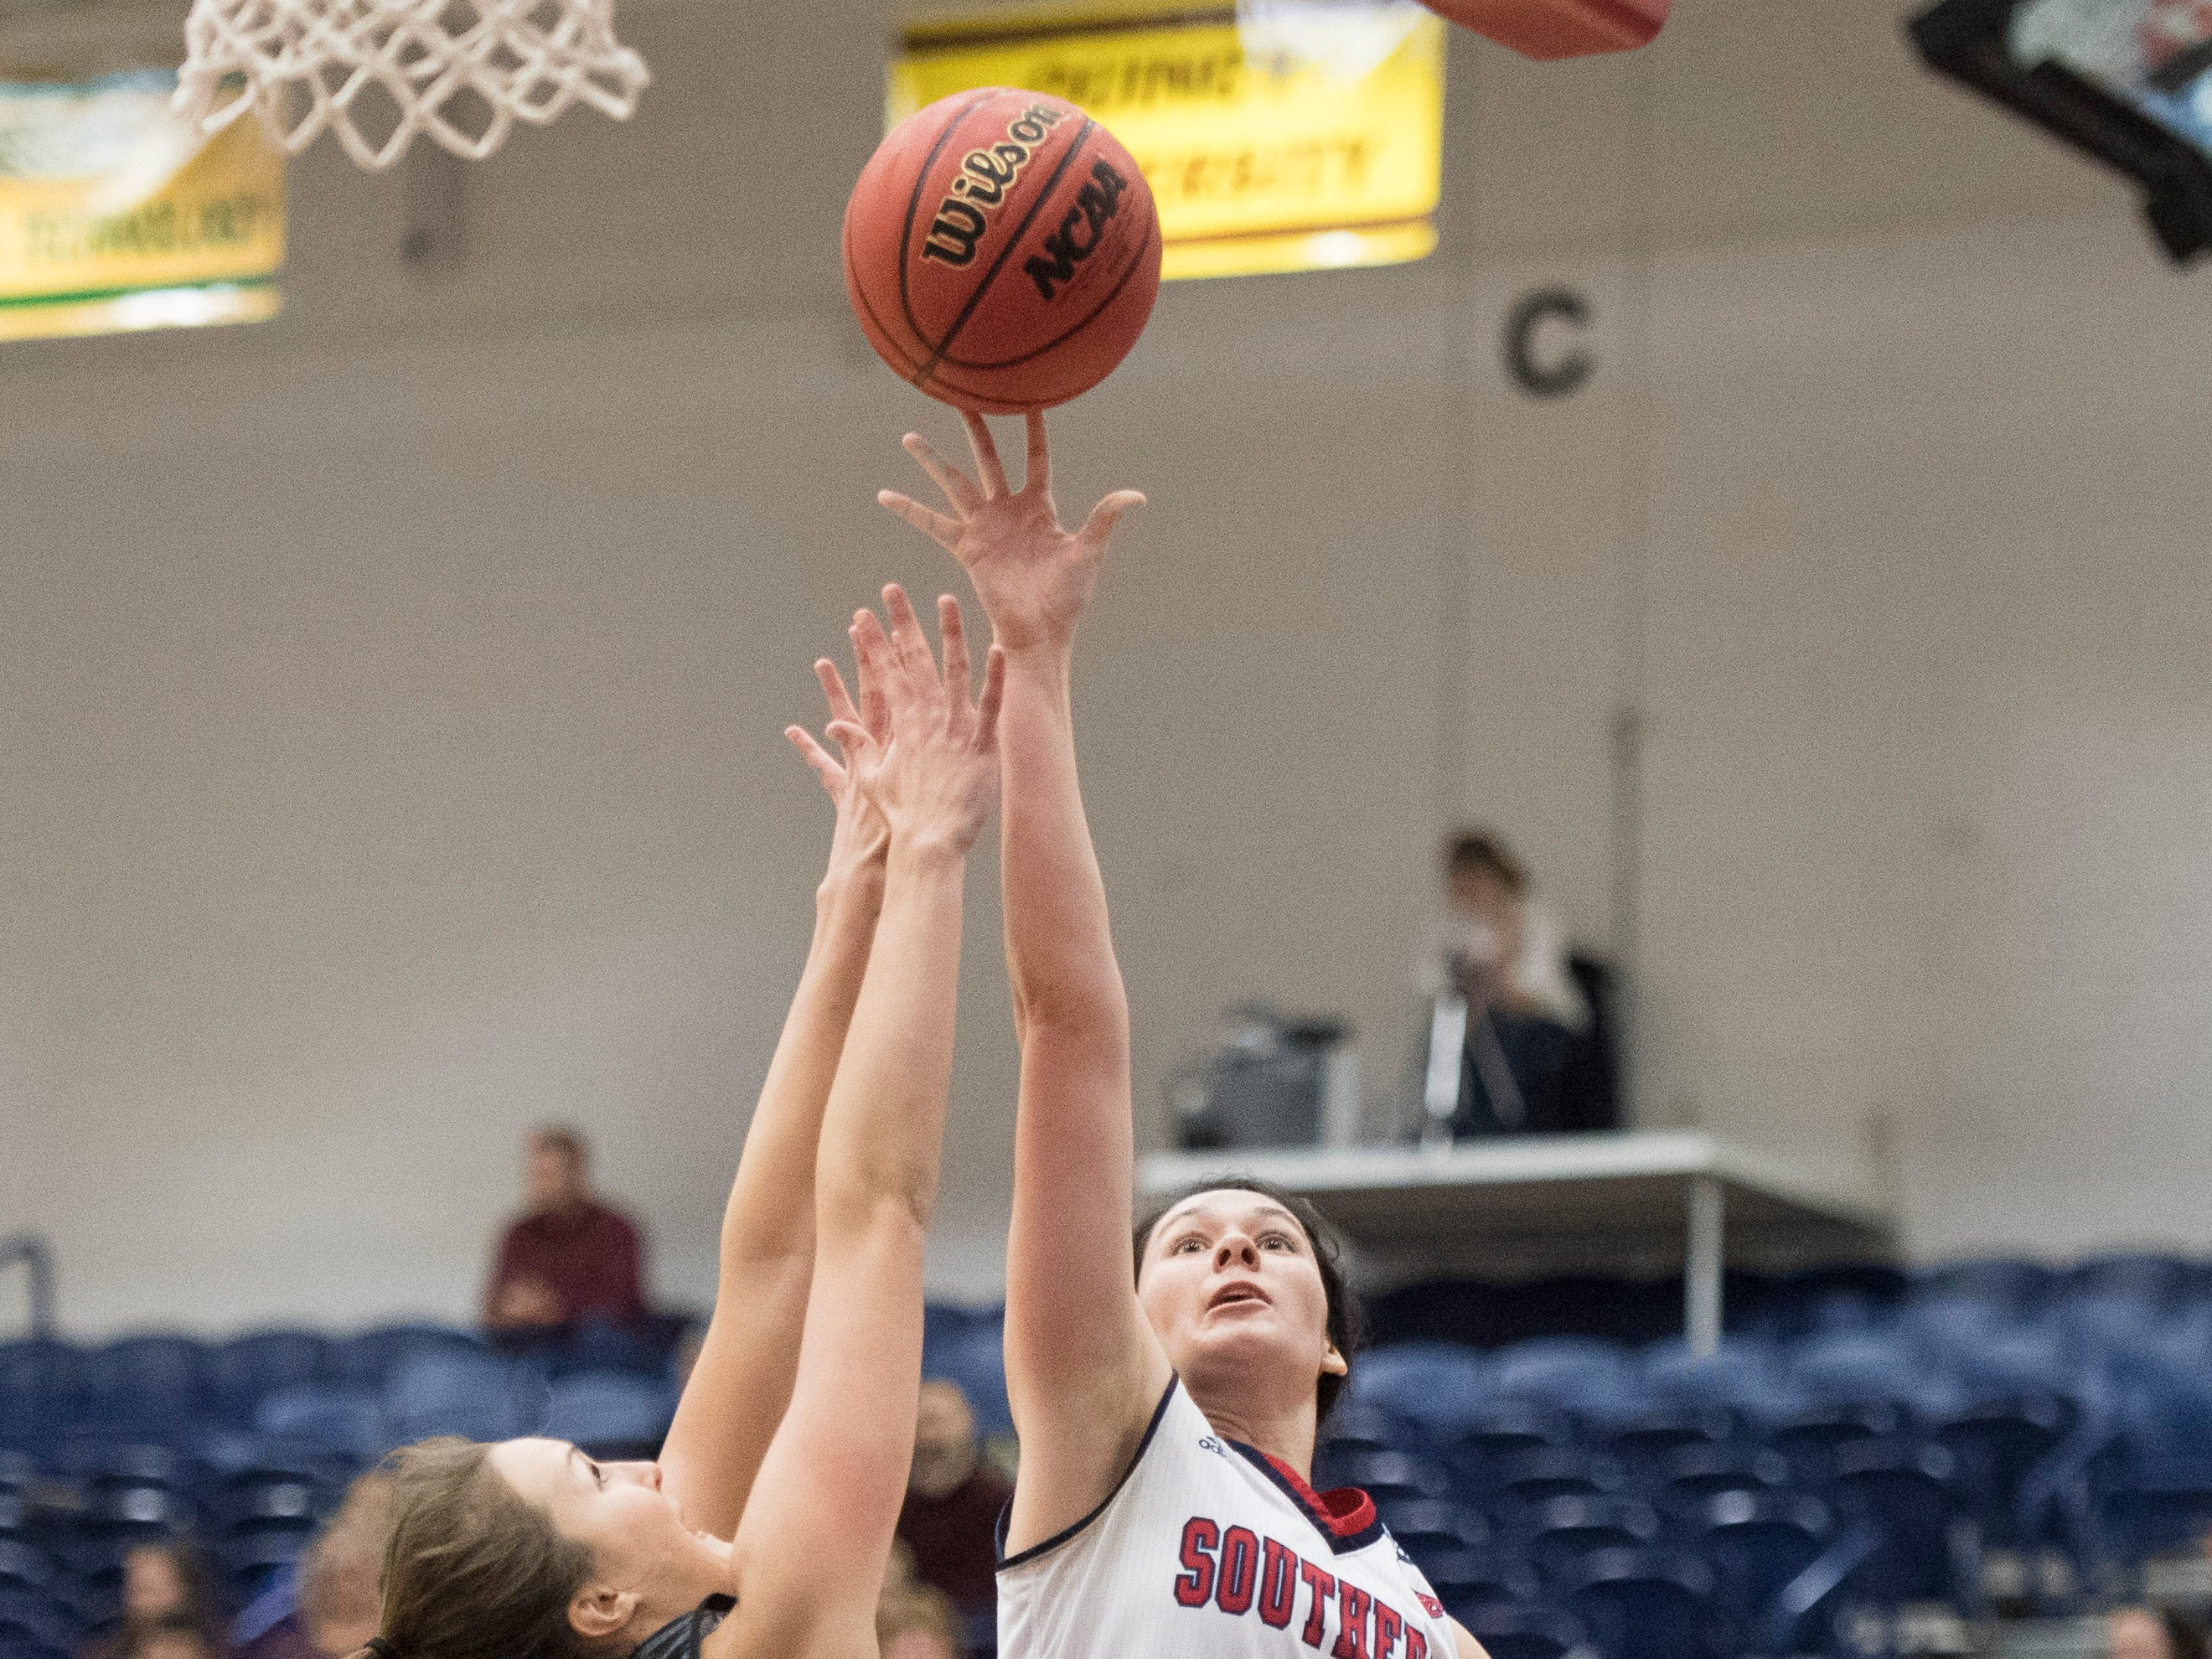 USI's Alex Davidson (21) reaches for the basket during the USI vs Bellarmine game at the PAC Saturday, Dec. 1, 2018.